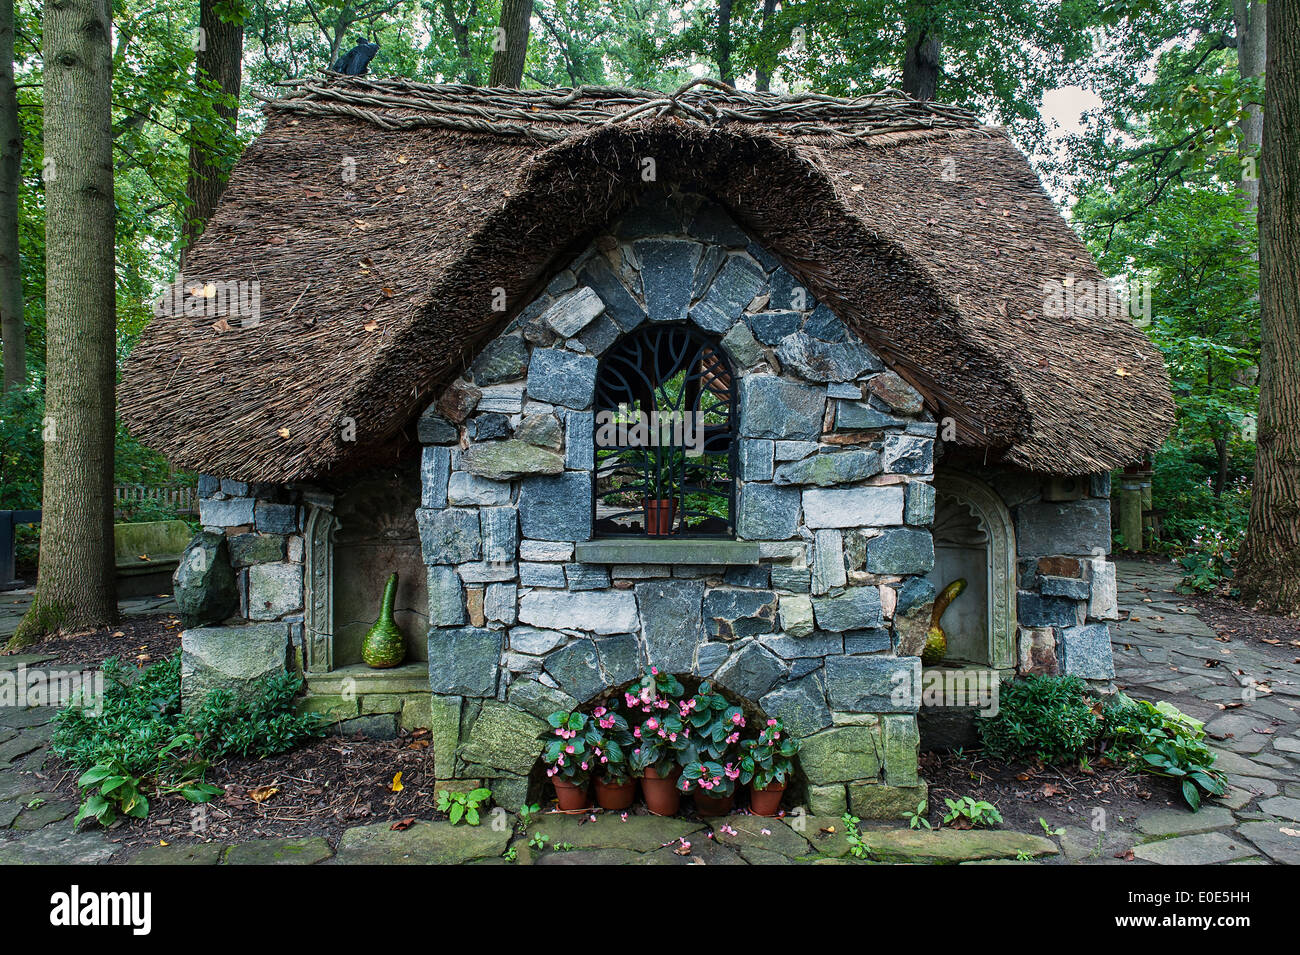 Thatched cottage in the Enchanted Woods at Winterthur Gardens, Delaware, USA - Stock Image